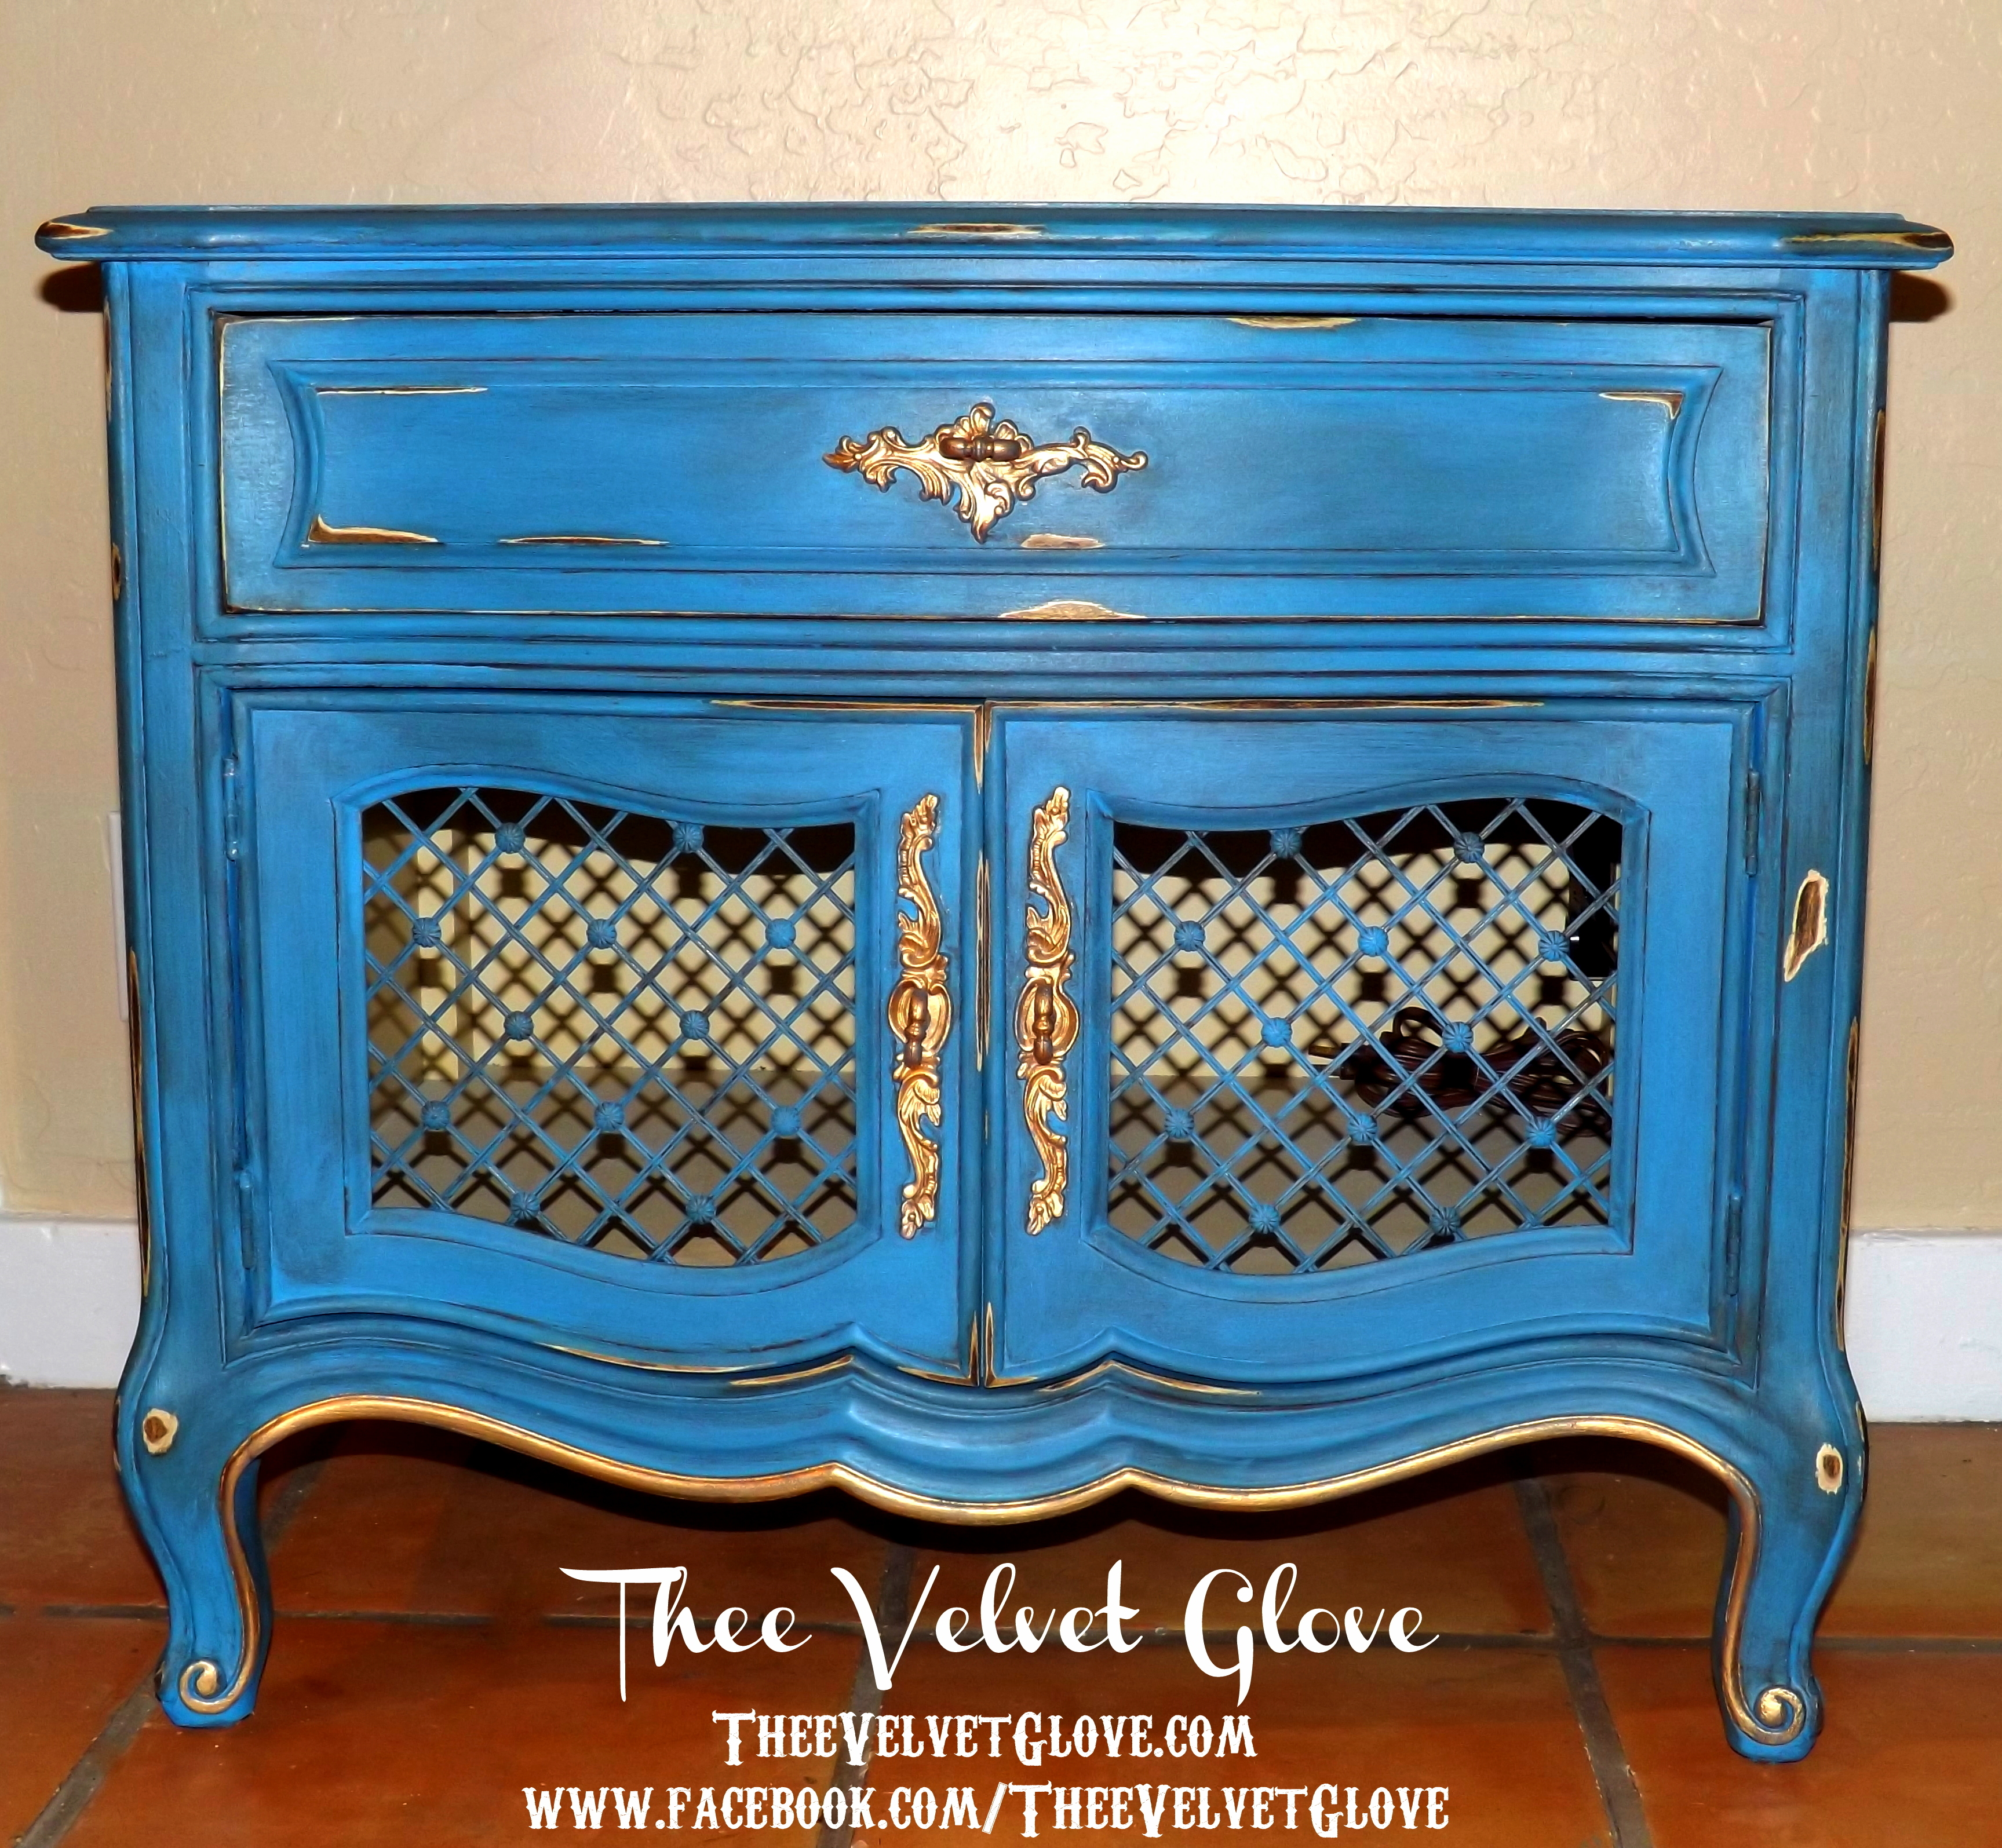 Graceland Blue Over You Vintage Henredon Nightstands Thee Velvet Glove